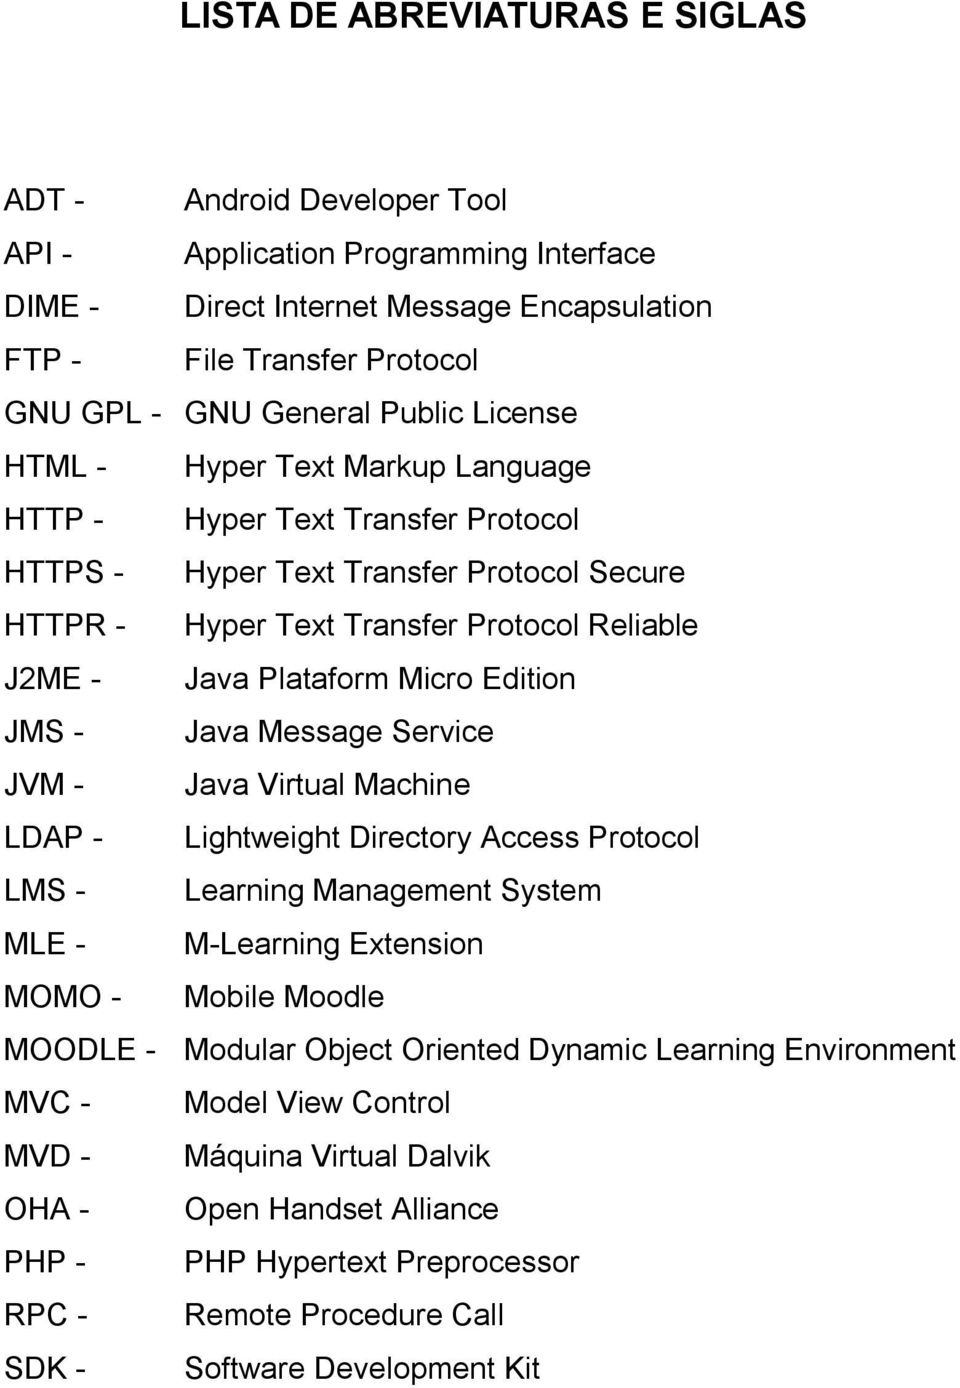 Micro Edition JMS - Java Message Service JVM - Java Virtual Machine LDAP - Lightweight Directory Access Protocol LMS - Learning Management System MLE - M-Learning Extension MOMO - Mobile Moodle